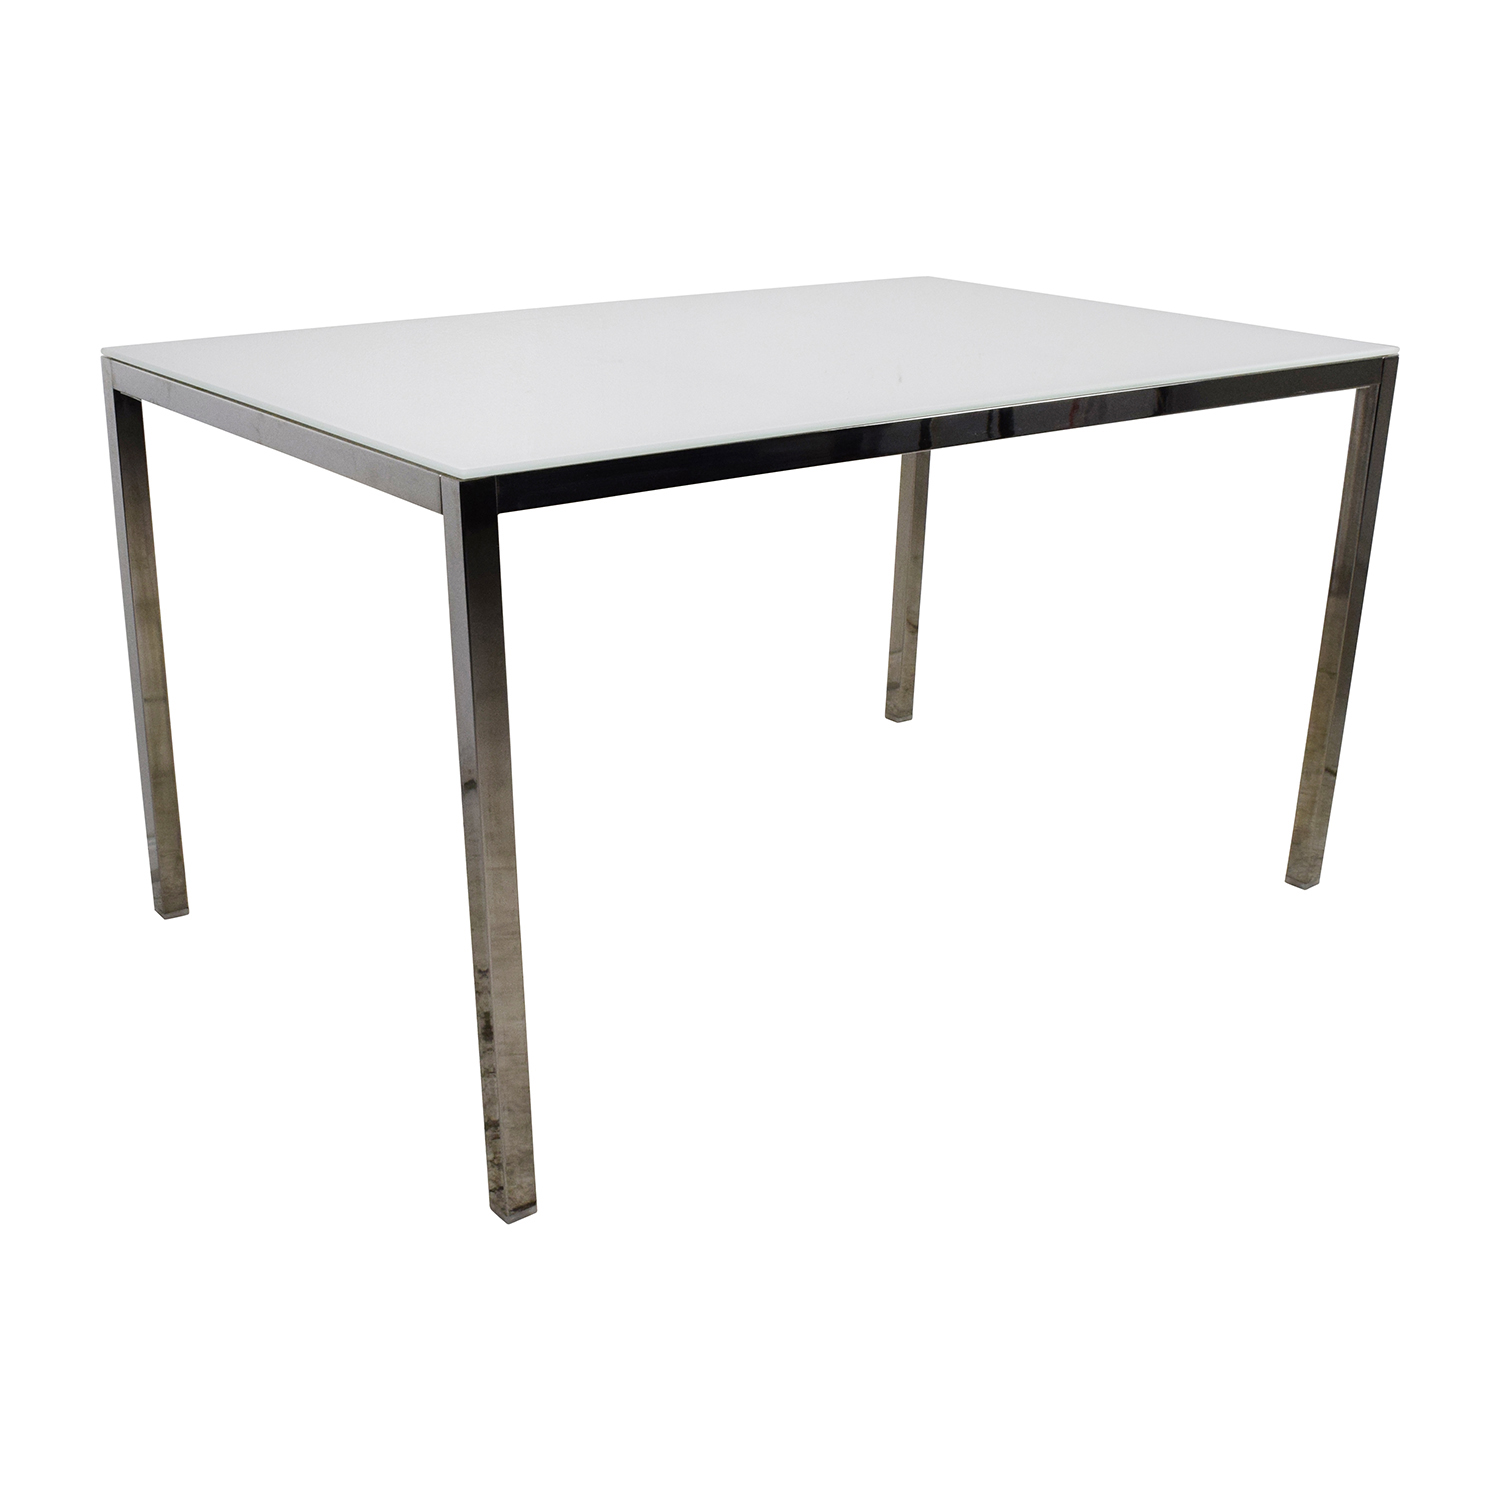 85 off ikea ikea torsby large glass top dining table for Ikea glass table tops